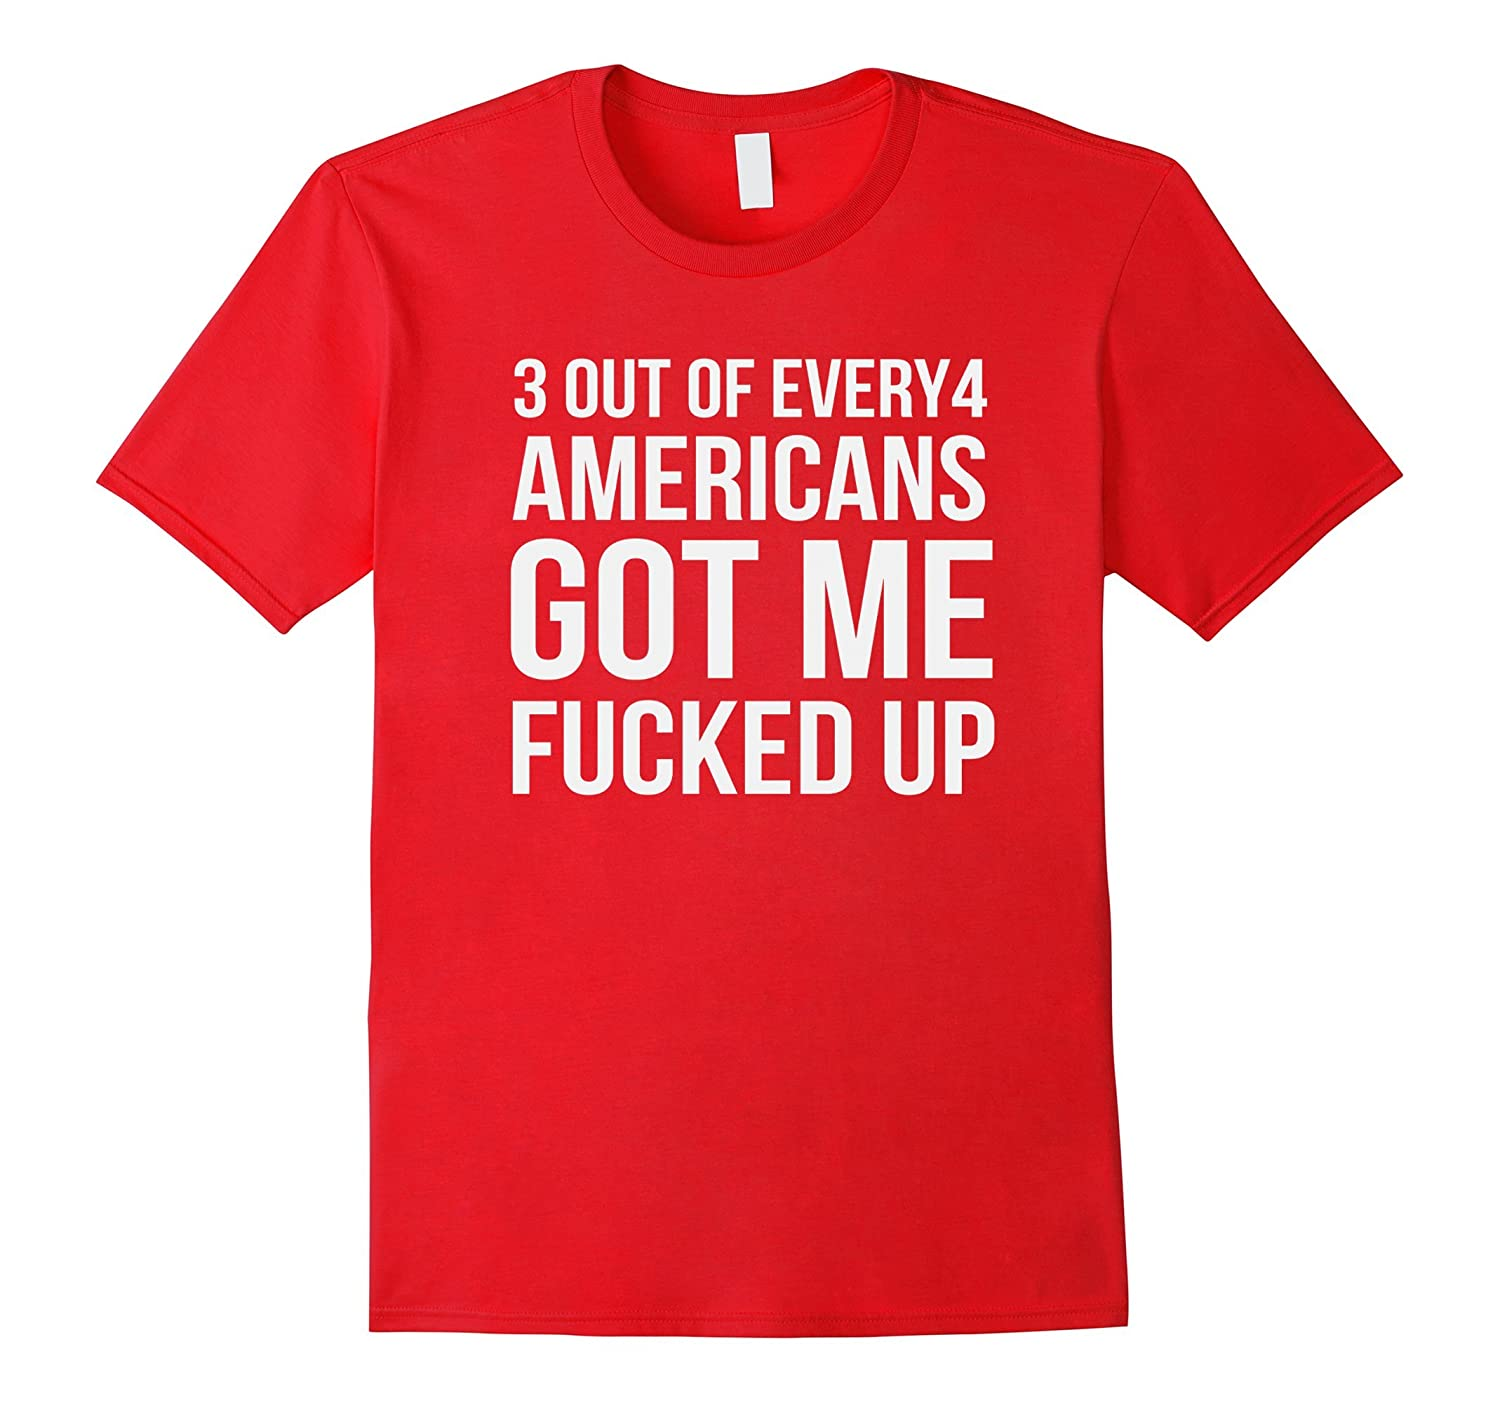 3 out of every 4 Americans got me fucked up Funny T-shirt